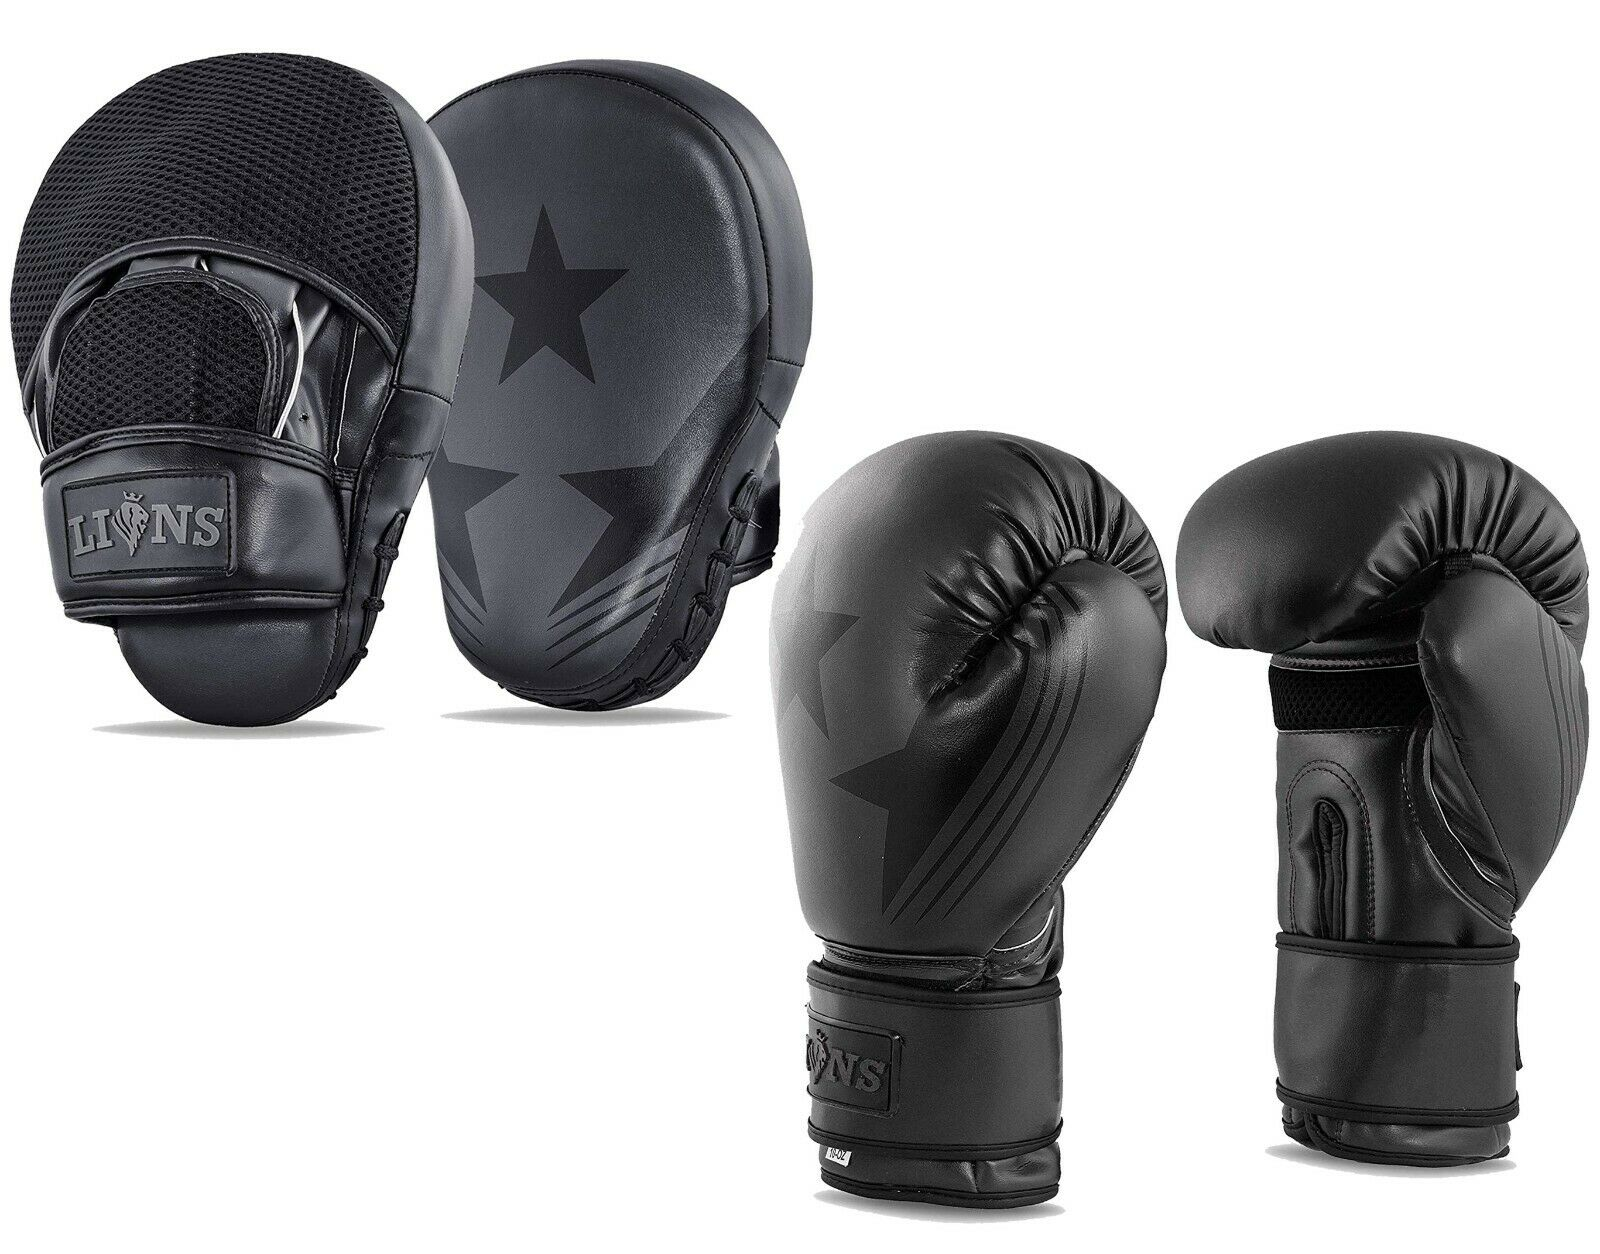 Lions Boxing Pads Punch Bag Training MMA Hook /& Jab Focus Mitts Thick Padded Pair